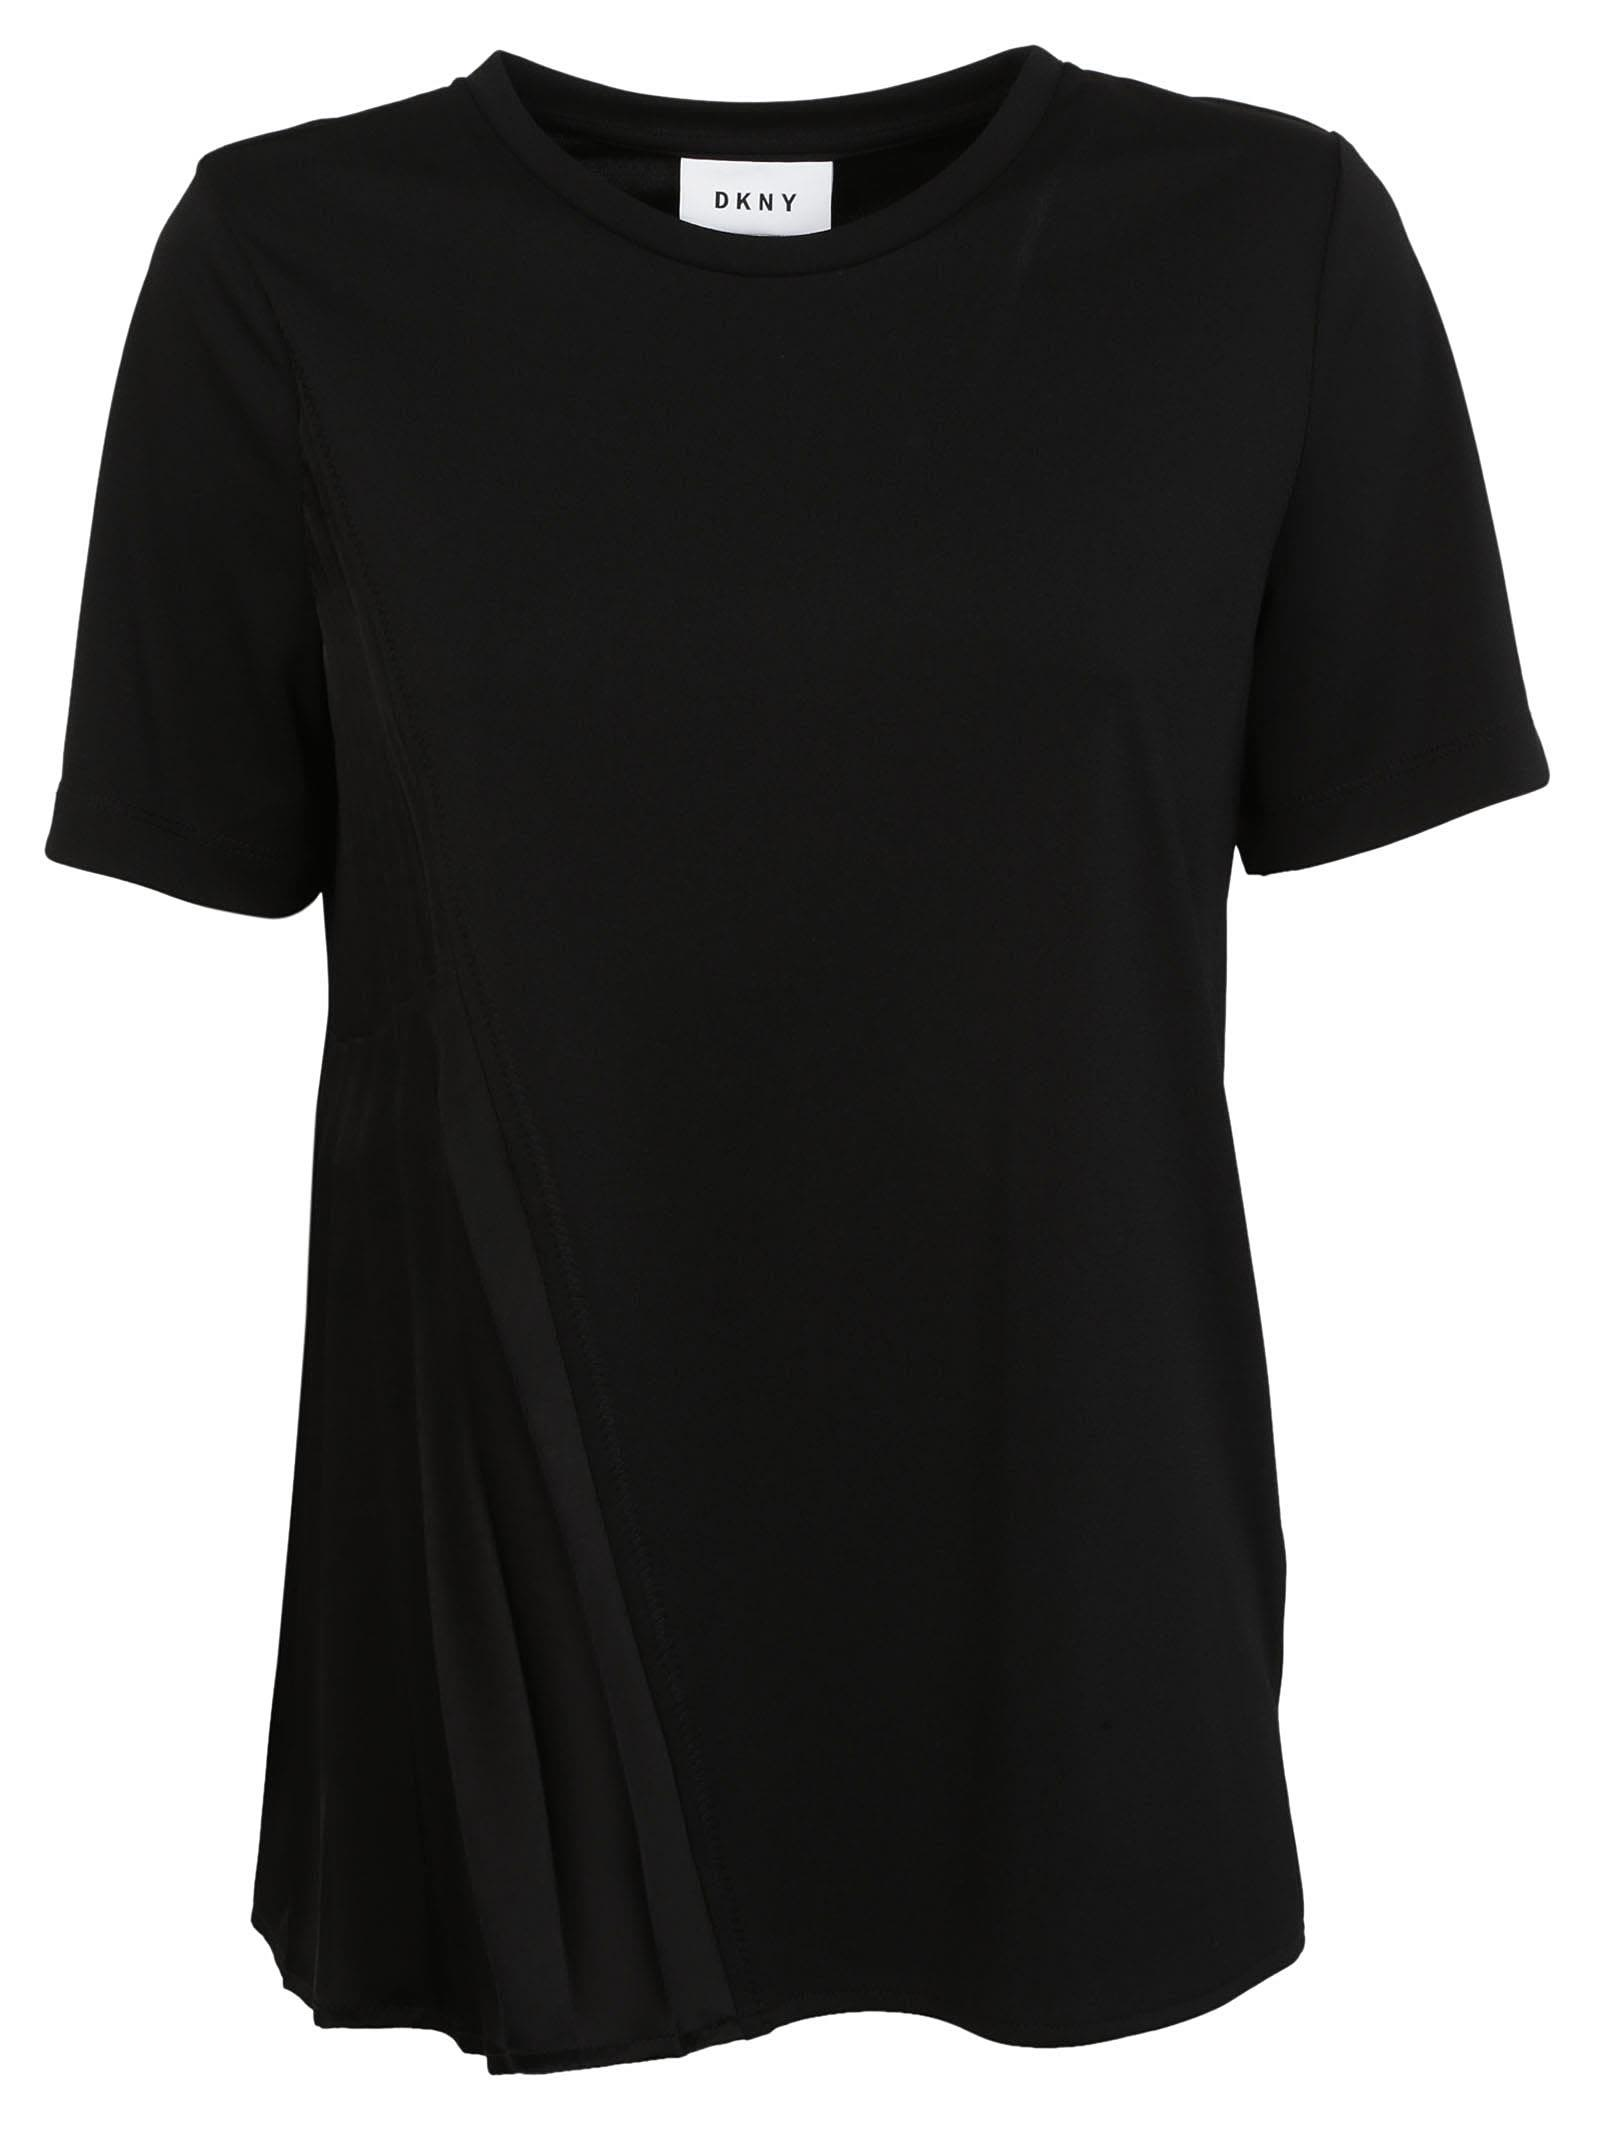 Dkny Classic Fitted T-shirt